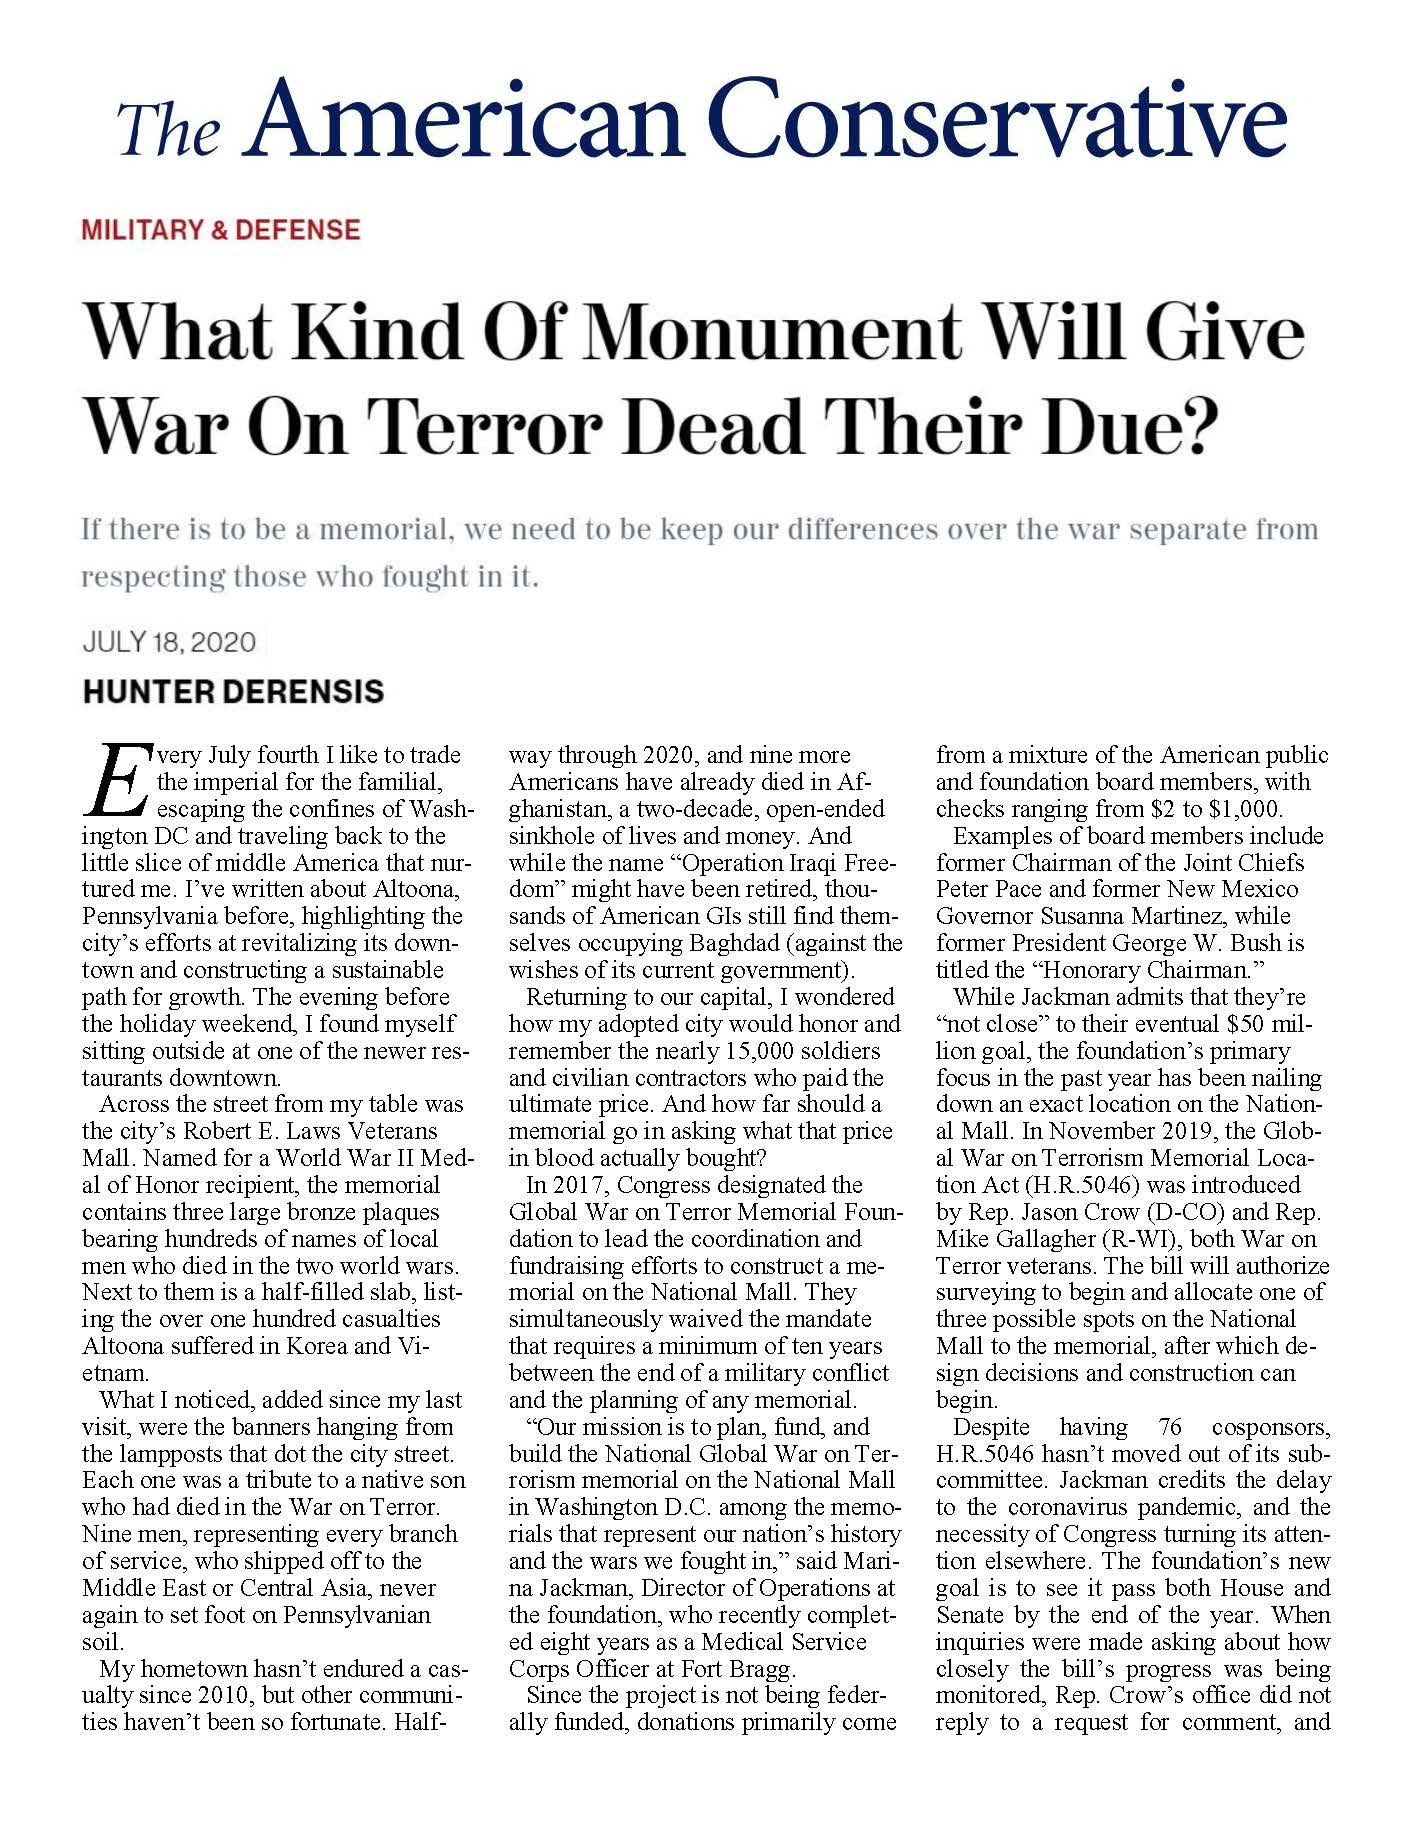 What Kind Of Monument Will Give War On Terror Dead Their Due?